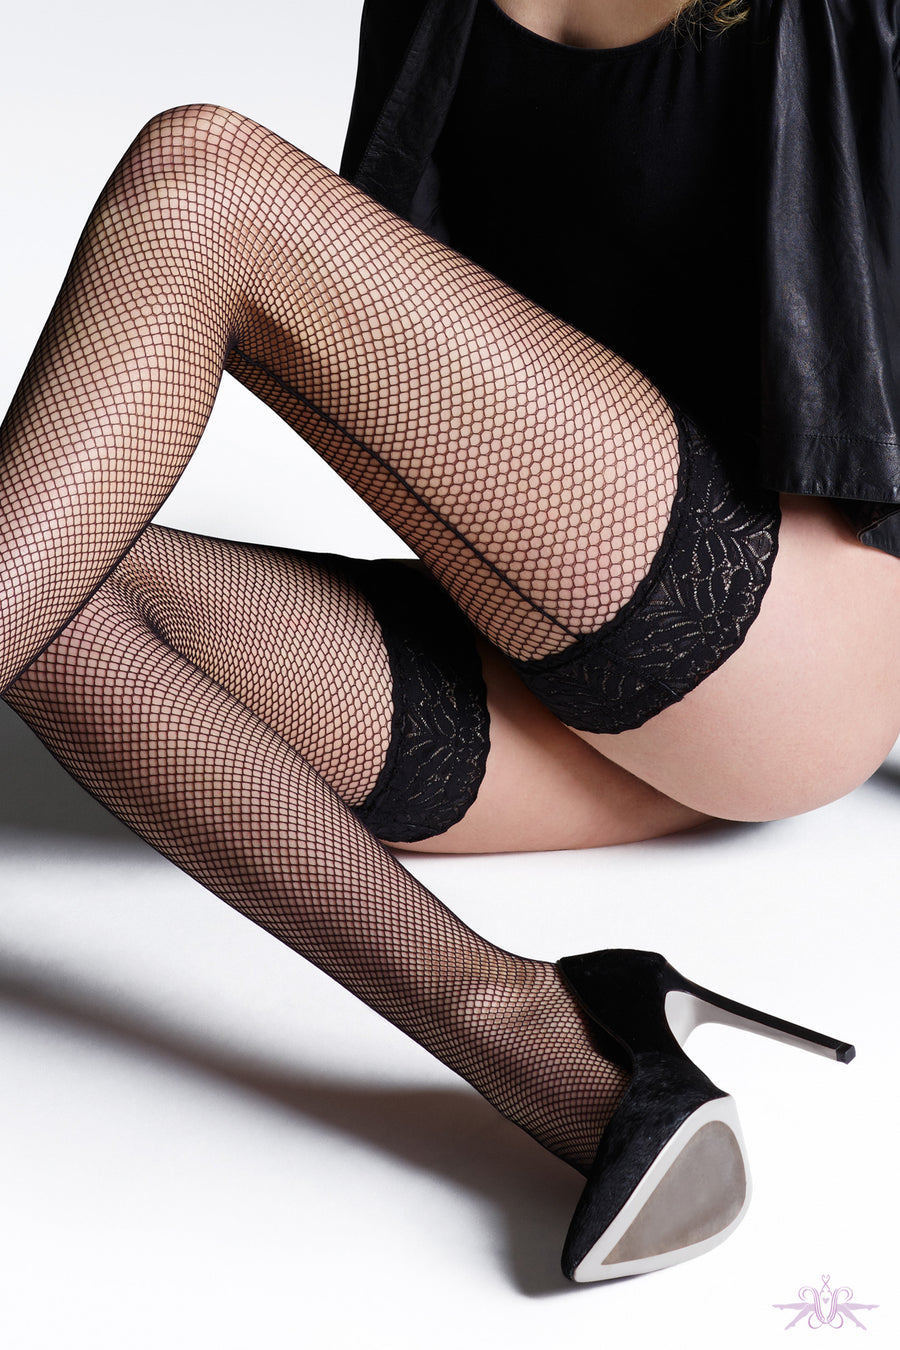 Jonathan Aston Fishnet Backseam Hold Ups - Mayfair Stockings